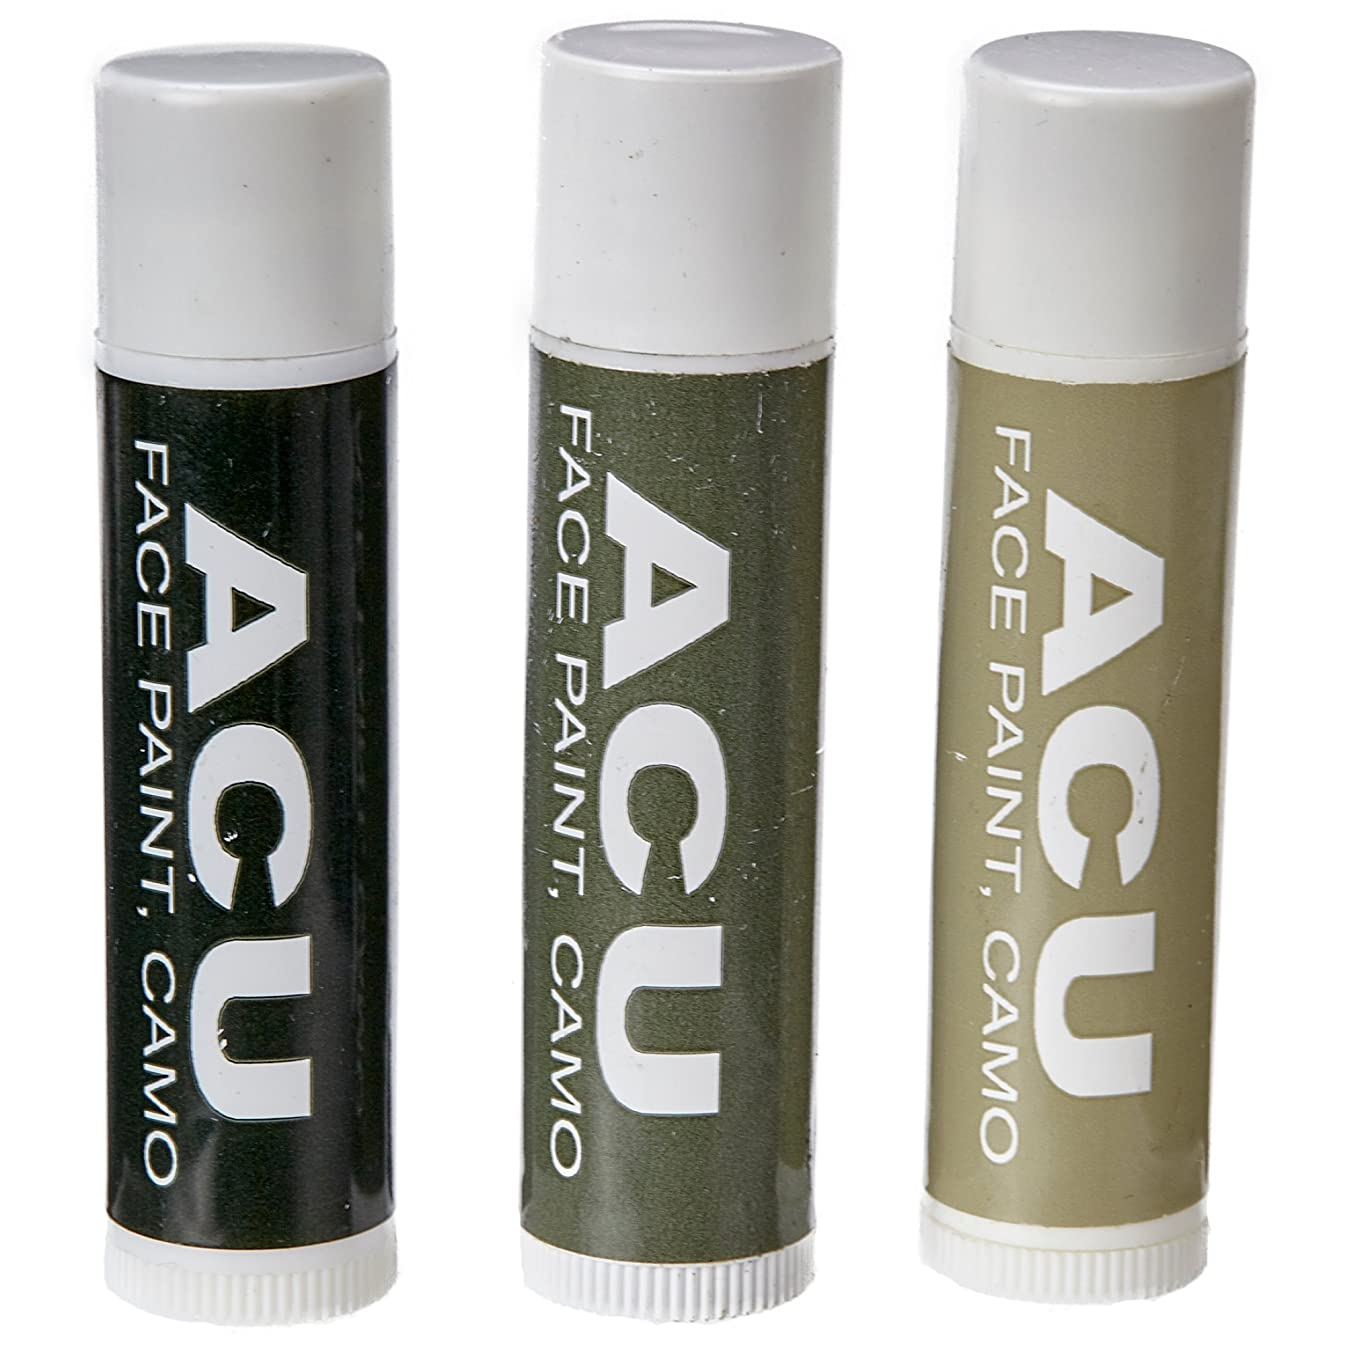 Bobby Weiner Camo Face Paint - Authentic US Army Camouflage Portable Costume Makeup - Hypoallergenic, Nontoxic, Odorless - Easy Wash Off - 3 x 0.15oz Sticks